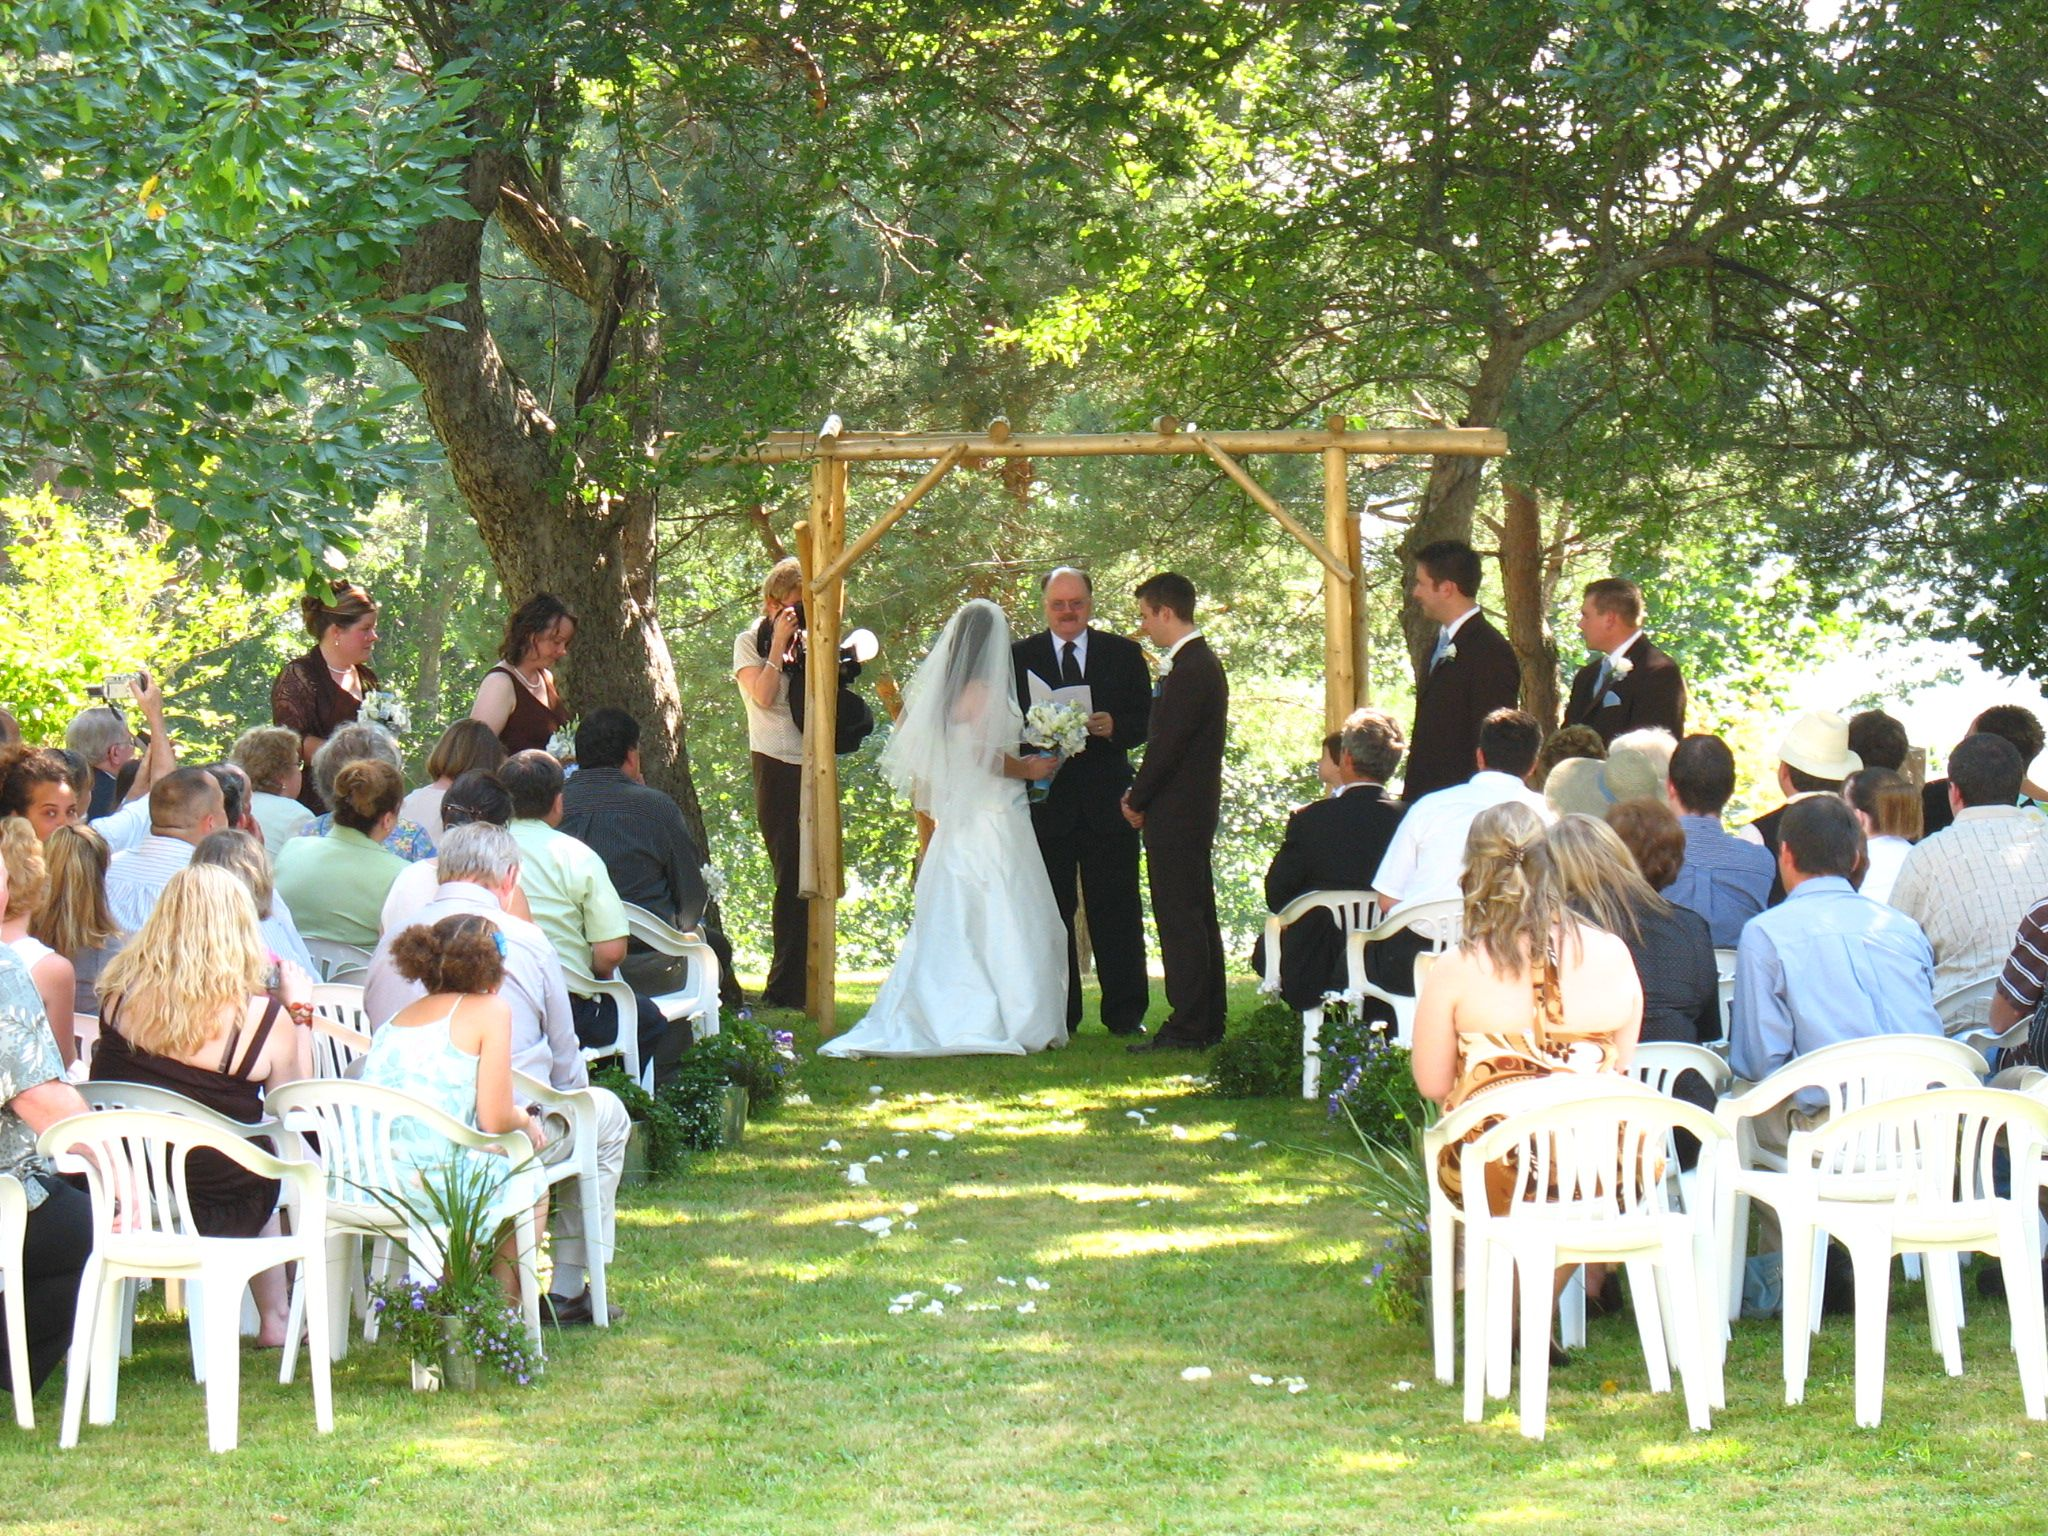 Wedding Ceremony Under The Shade Of Apple Trees On Grounds